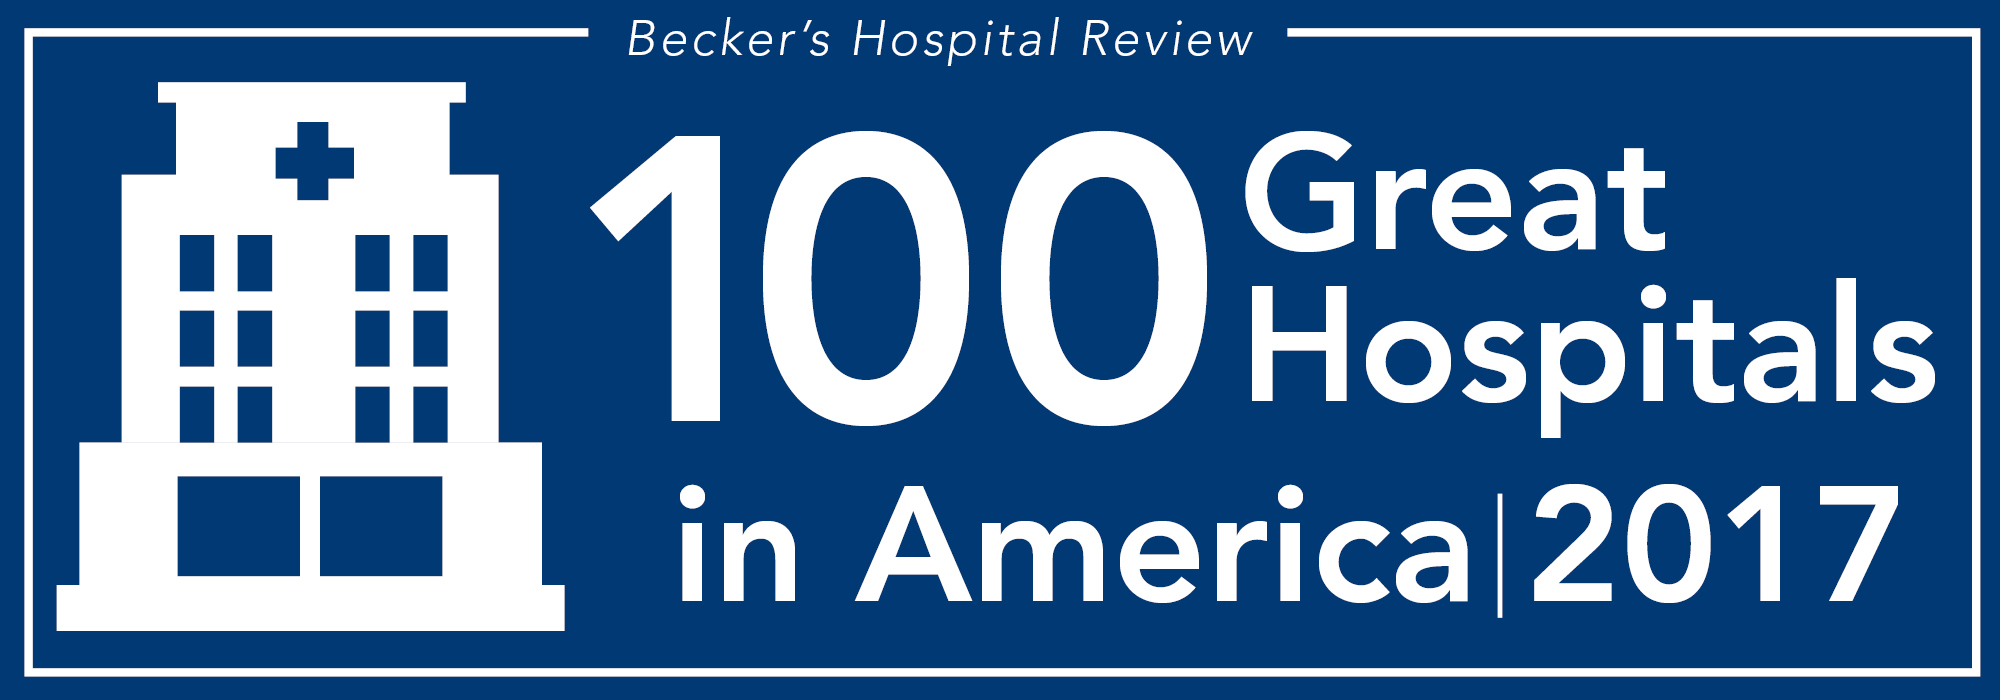 100 Great Hospitals in America for 2017